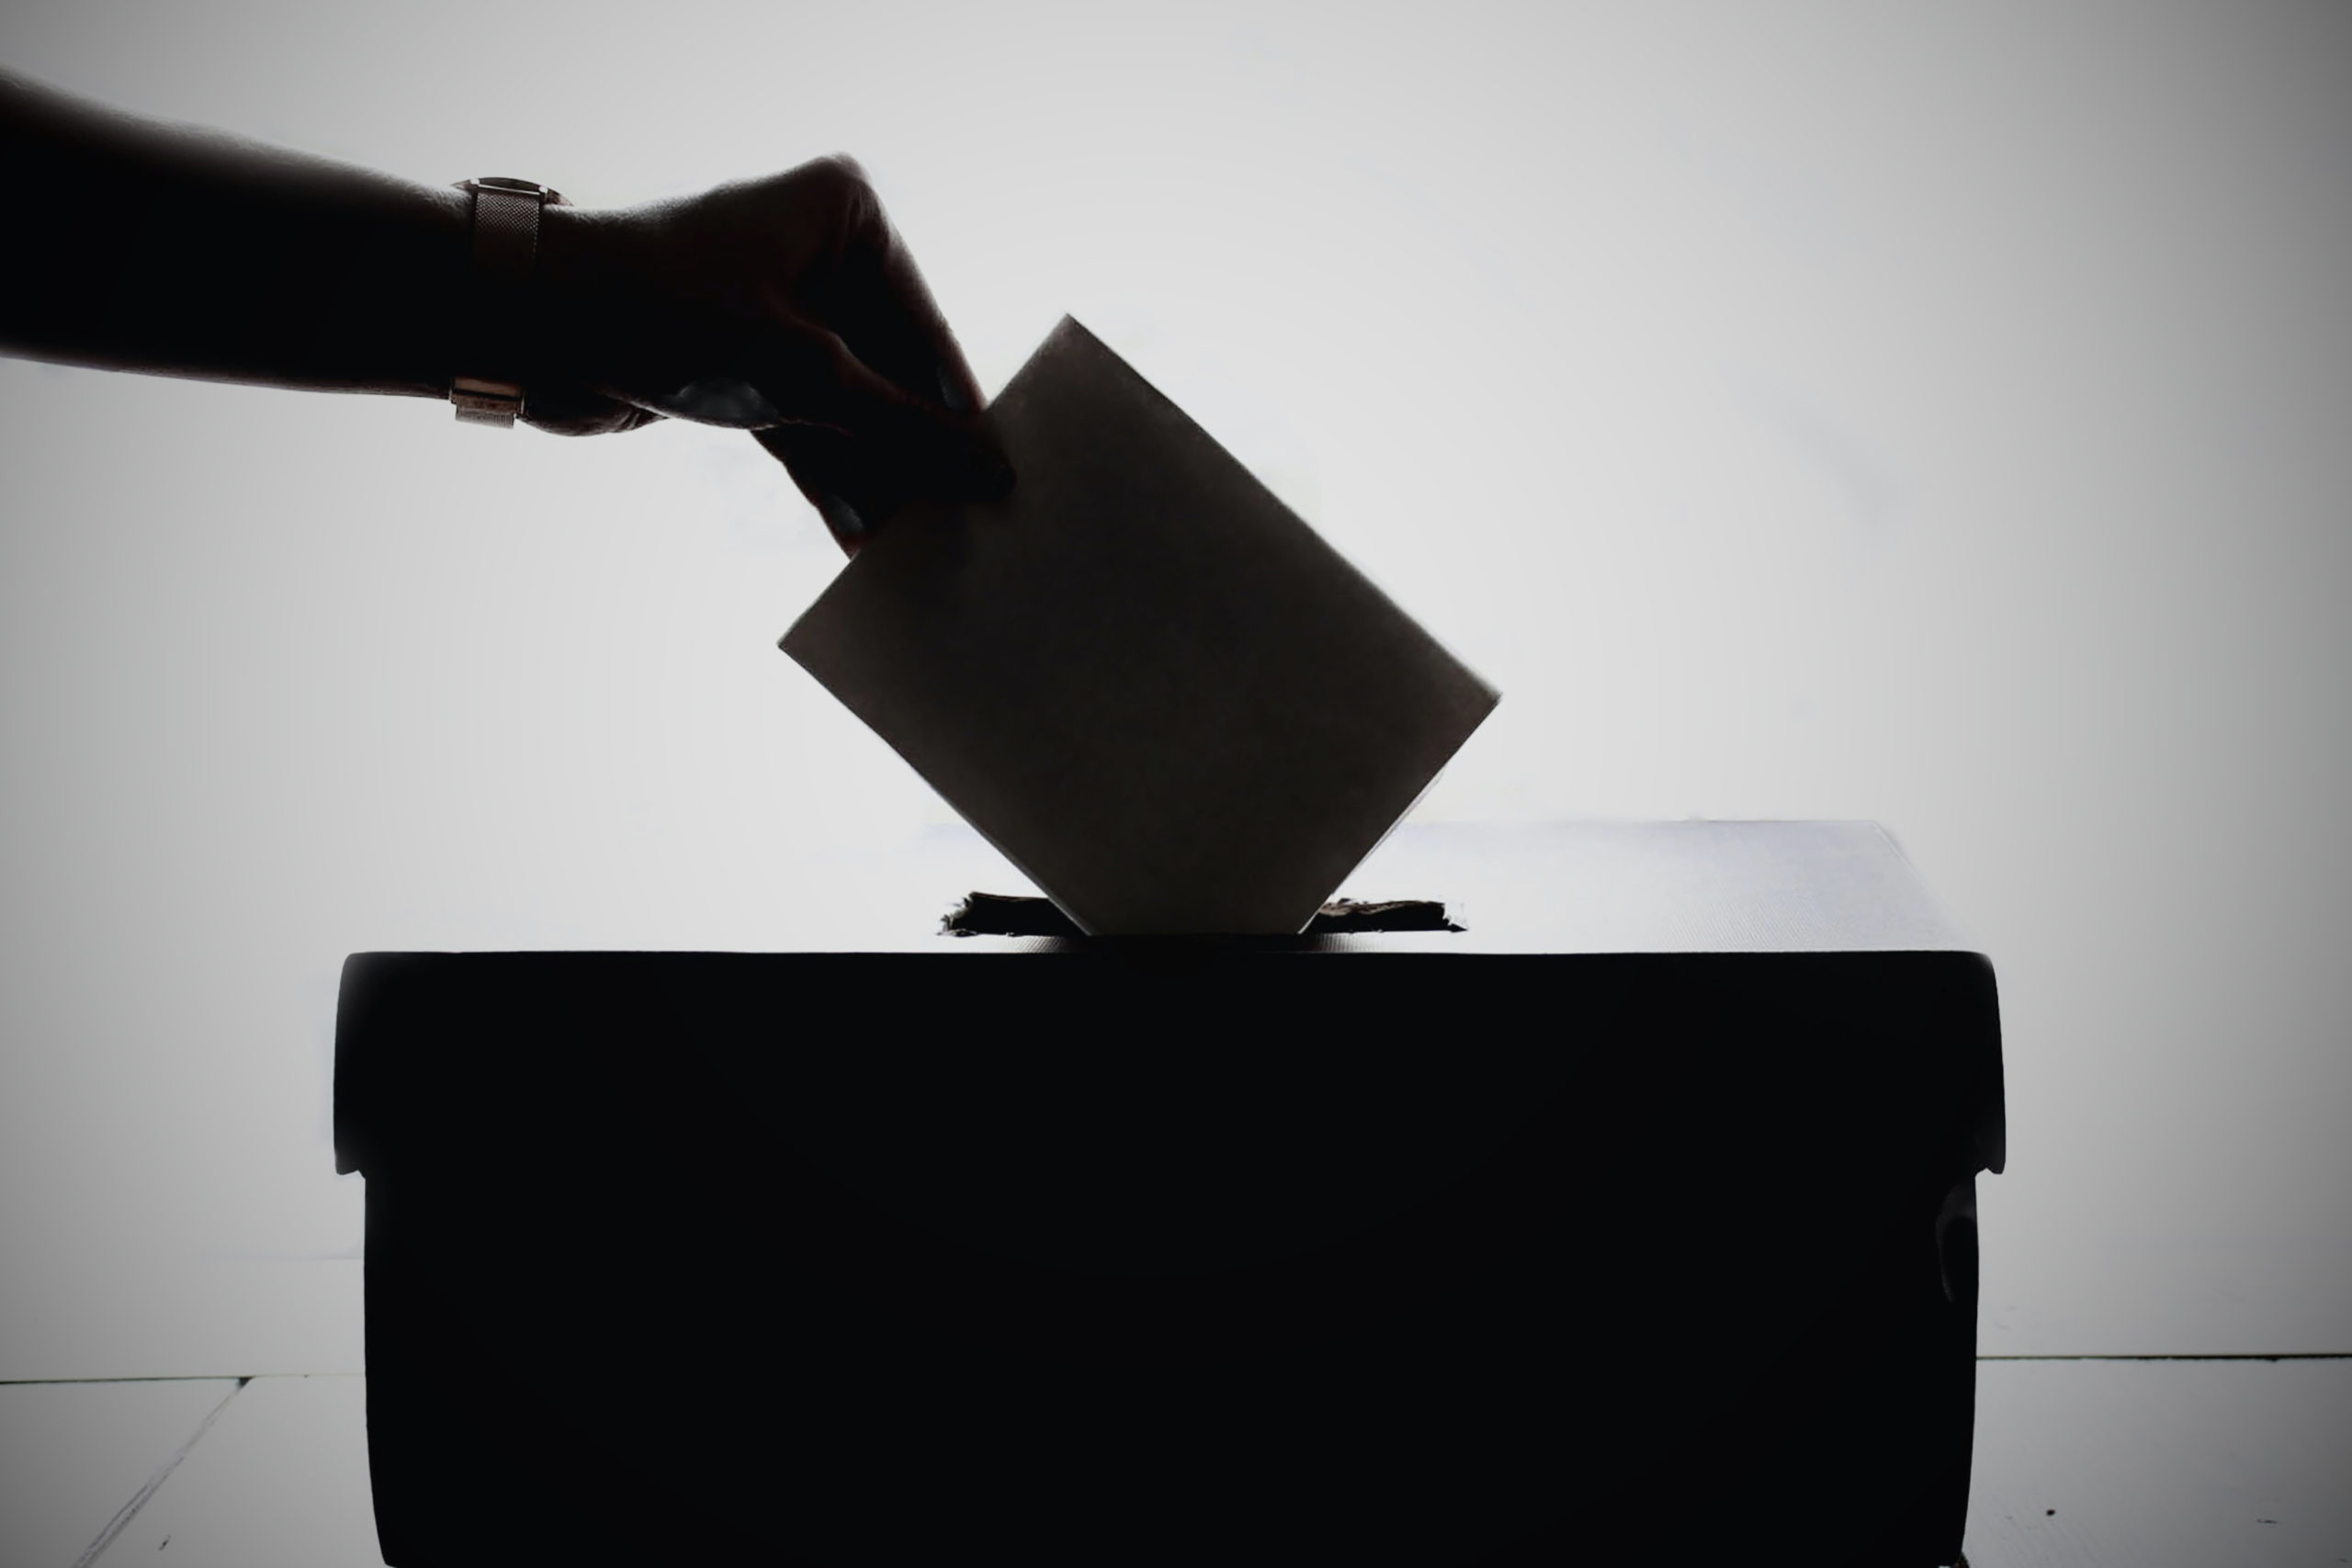 hand-putting-paper-in-ballot-box